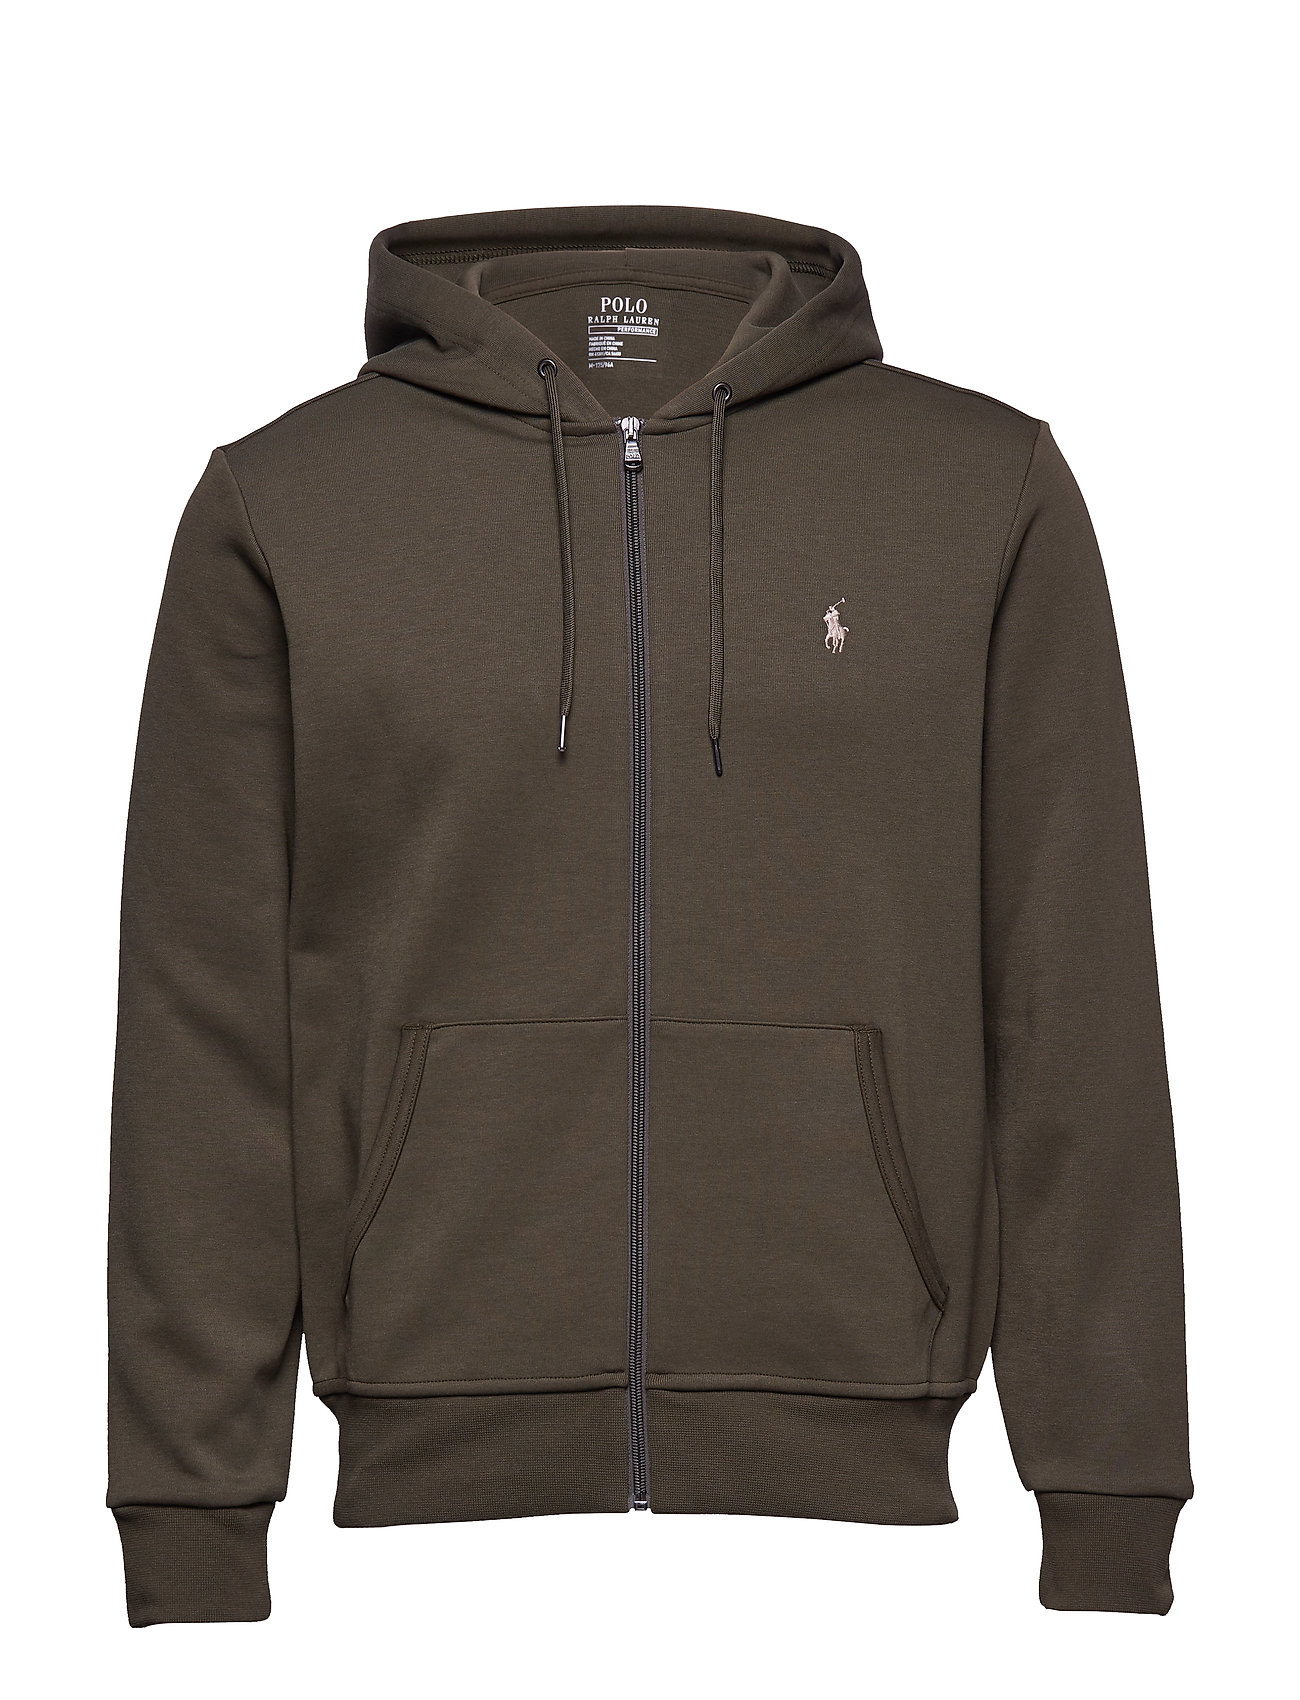 Polo Ralph Lauren Double-Knit Full-Zip Hoodie - COMPANY OLIVE